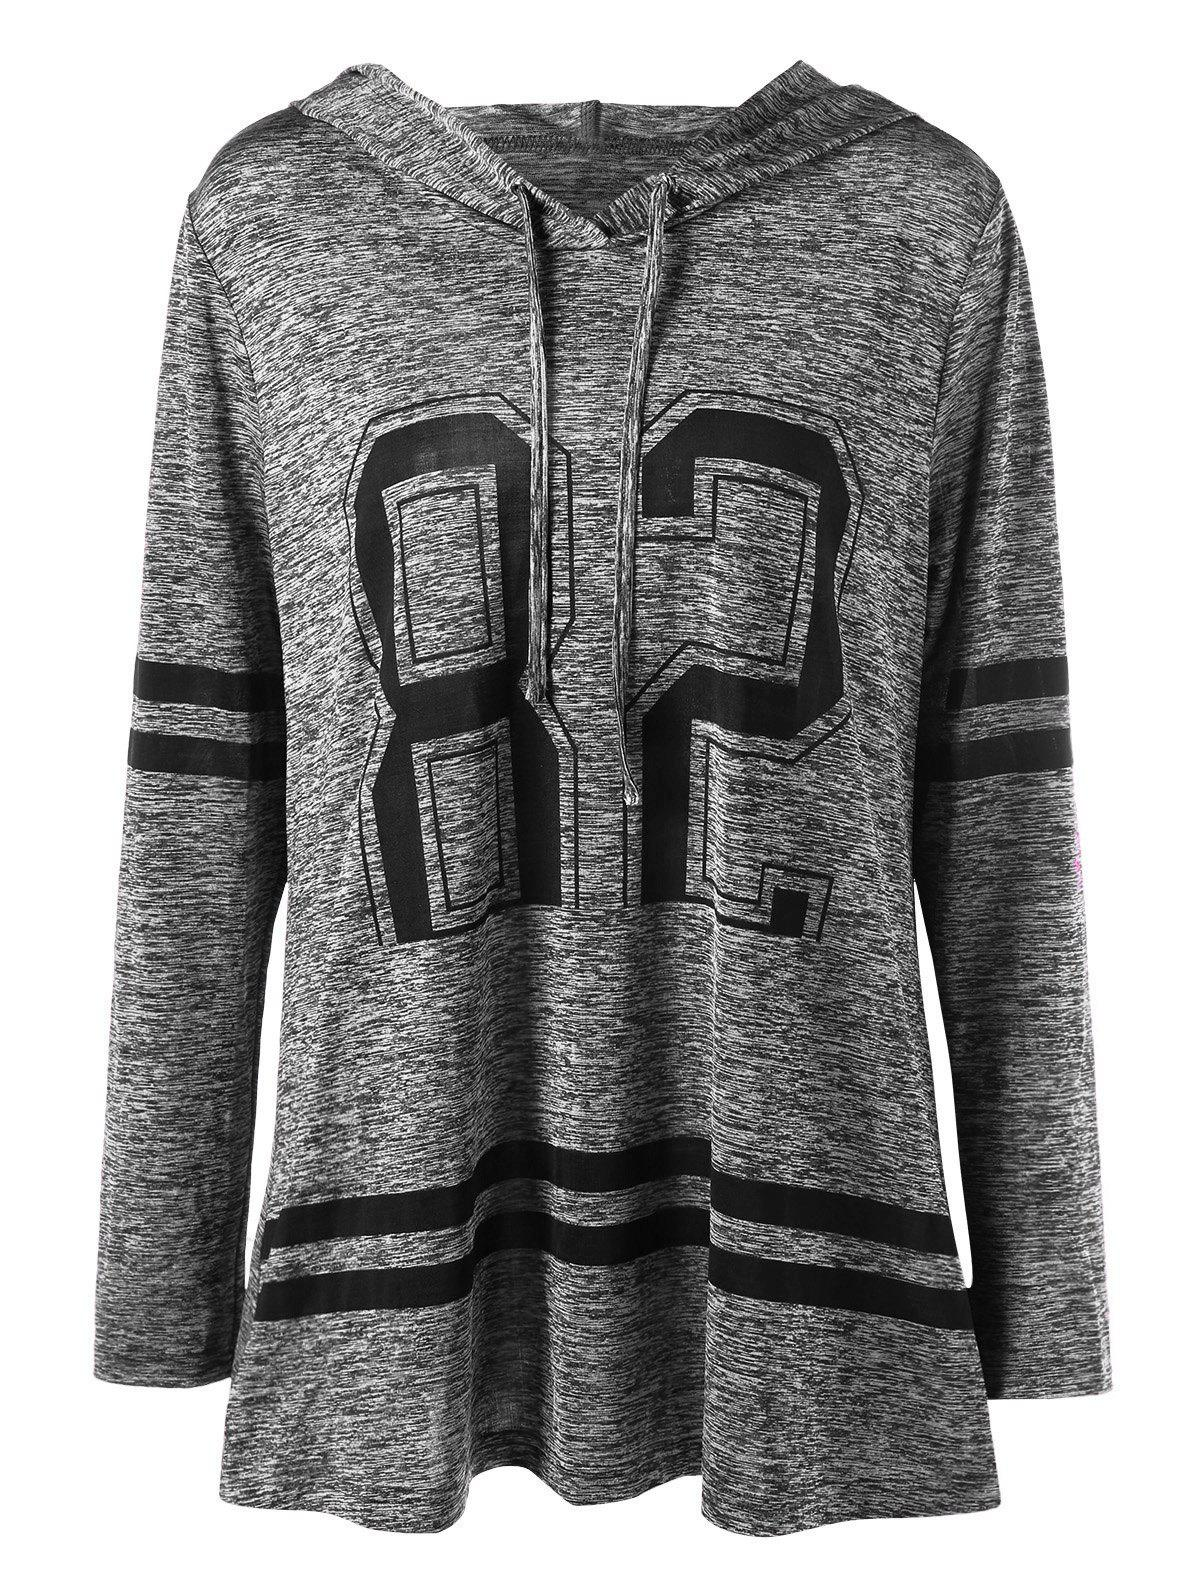 Plus Size Graphic Marled Tunic HoodieWOMEN<br><br>Size: 2XL; Color: BLACK GREY; Material: Polyester,Spandex; Shirt Length: Long; Sleeve Length: Full; Style: Casual; Pattern Style: Others; Season: Fall,Spring; Weight: 0.3100kg; Package Contents: 1 x Hoodie;